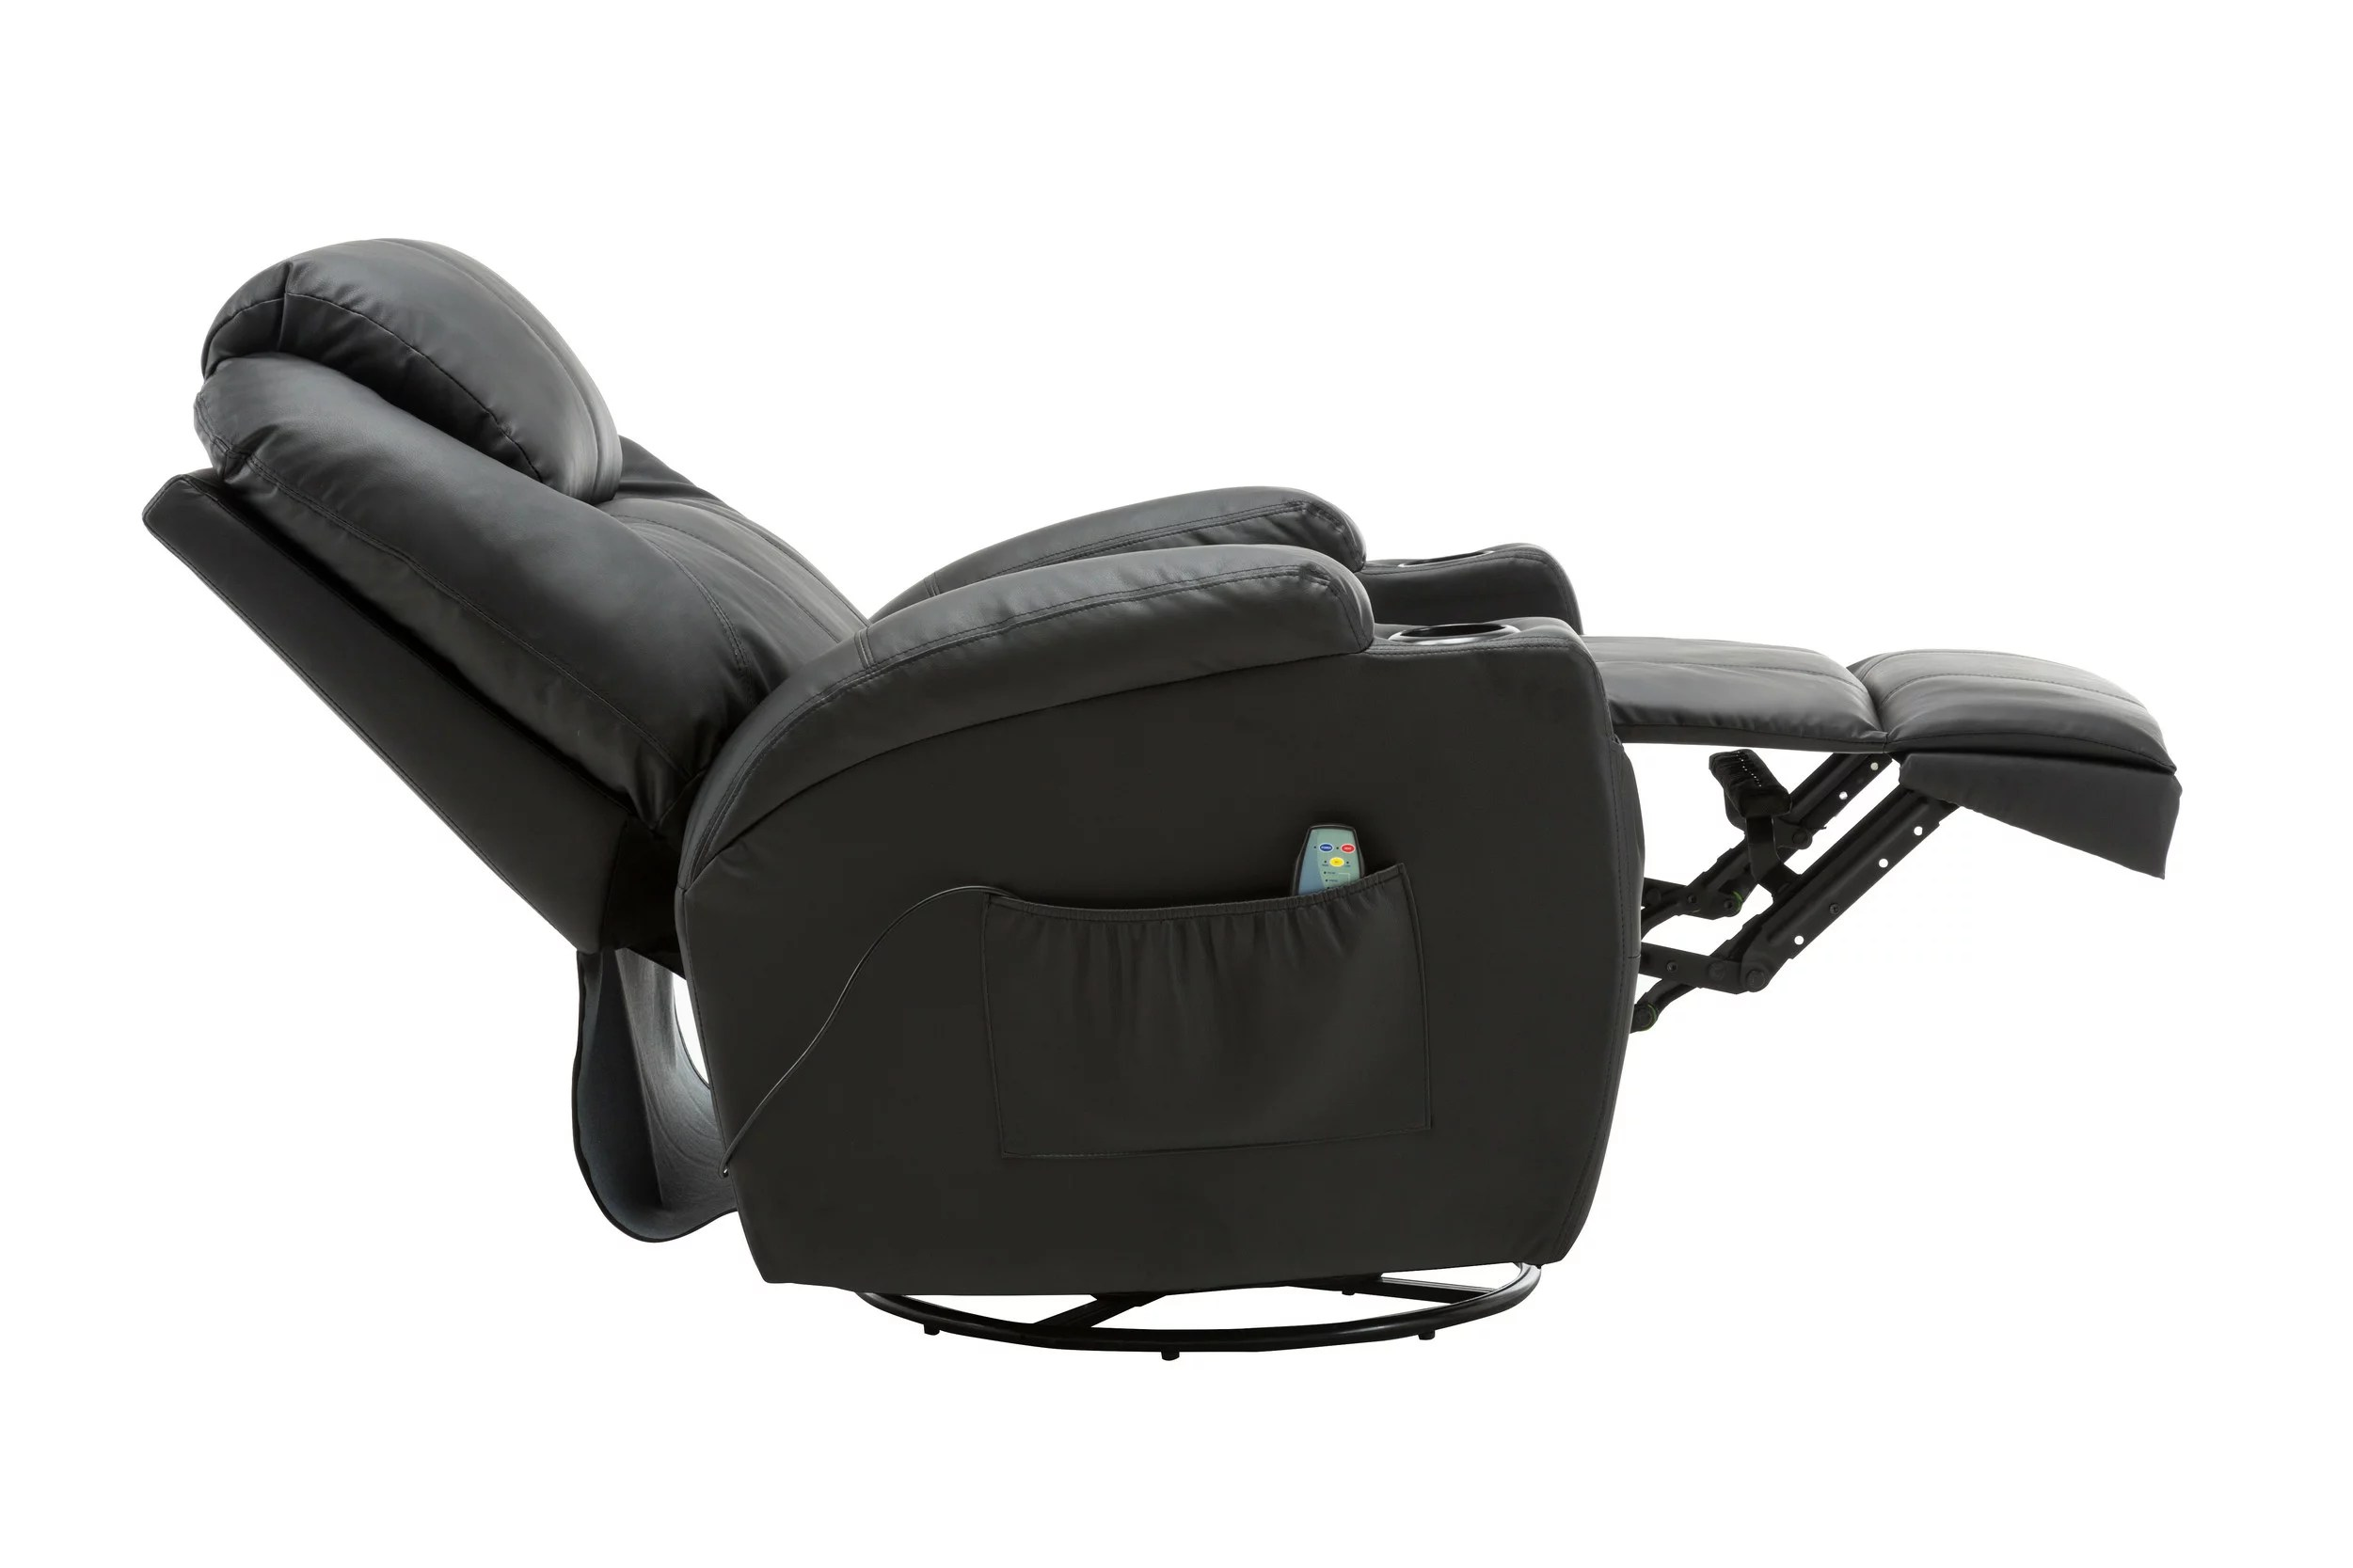 baby swing vibrating chair combo ergonomic specifications mcombo modern massage recliner sofa